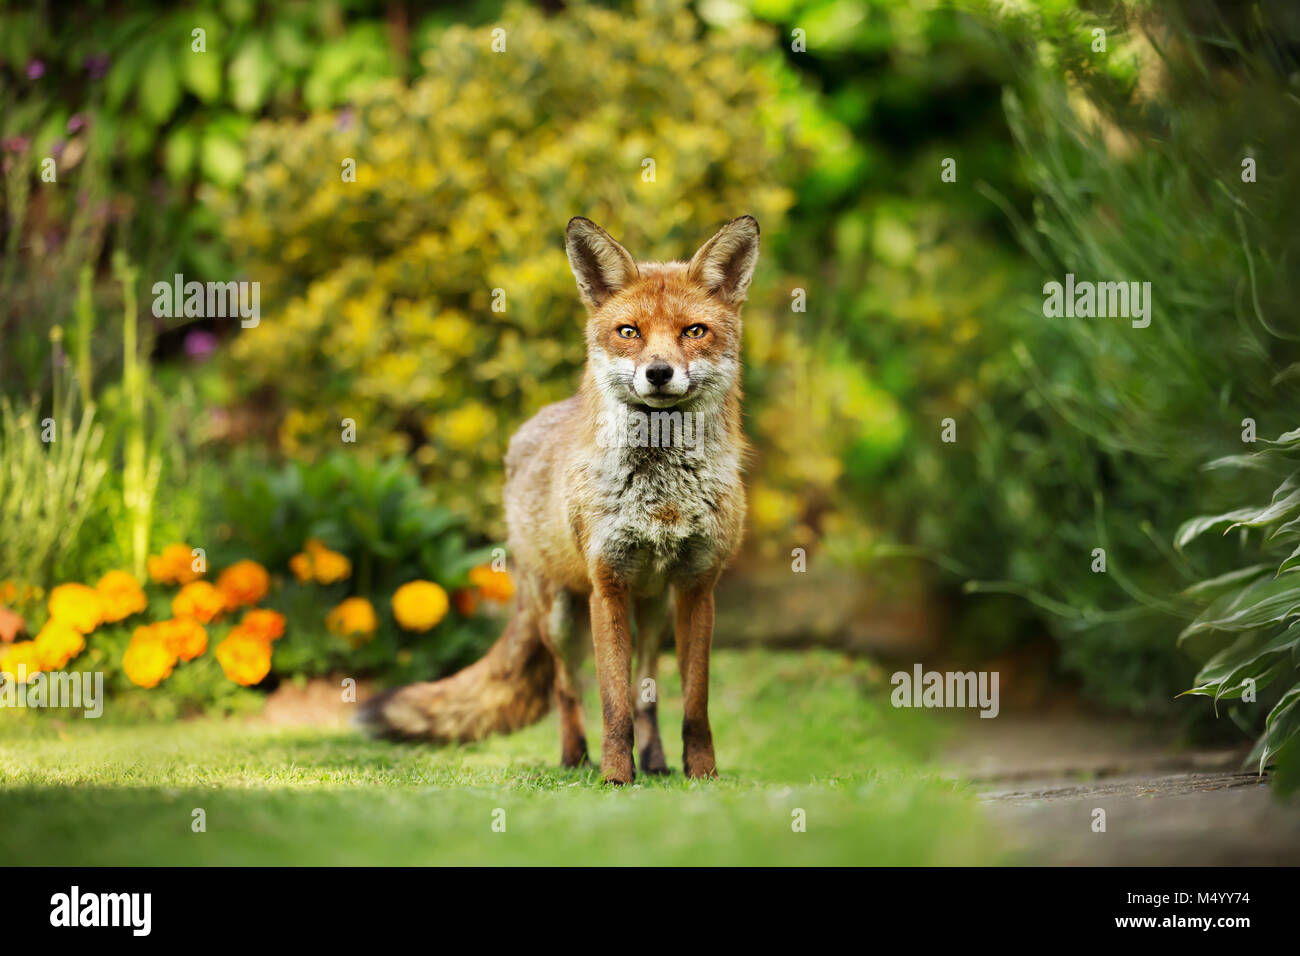 Red fox standing in the garden with flowers, summer in UK. - Stock Image